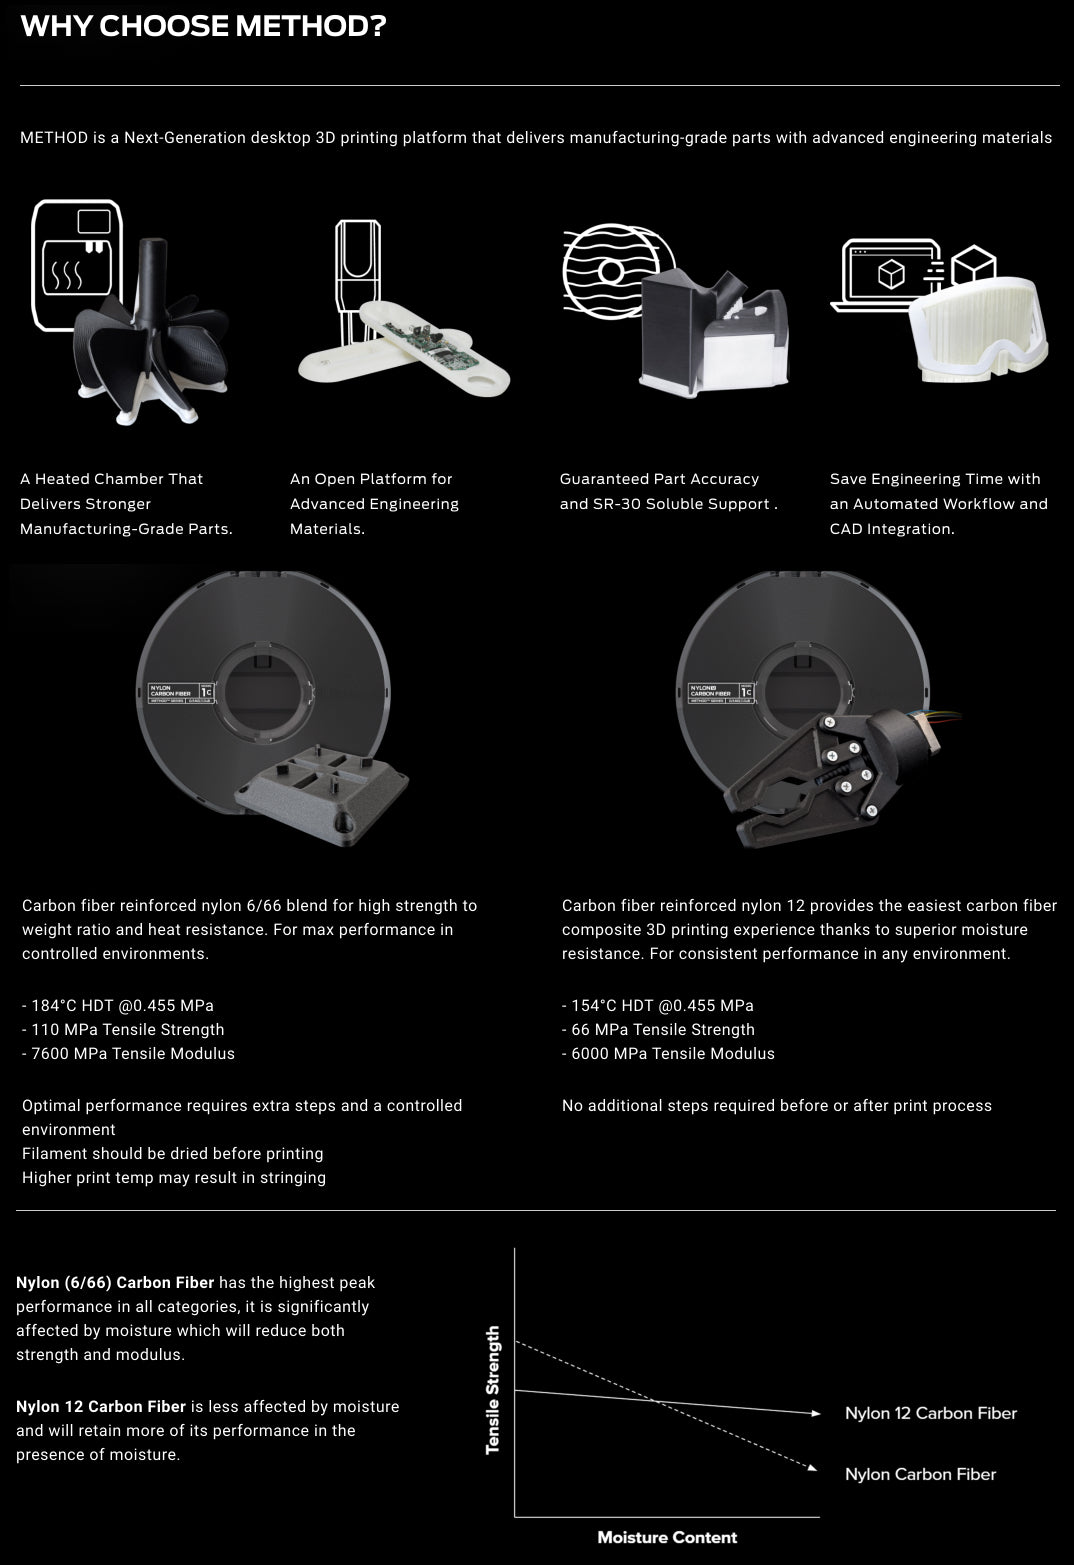 MakerBot-METHOD-3D-Printer-Carbon-Fiber-Edition-Description